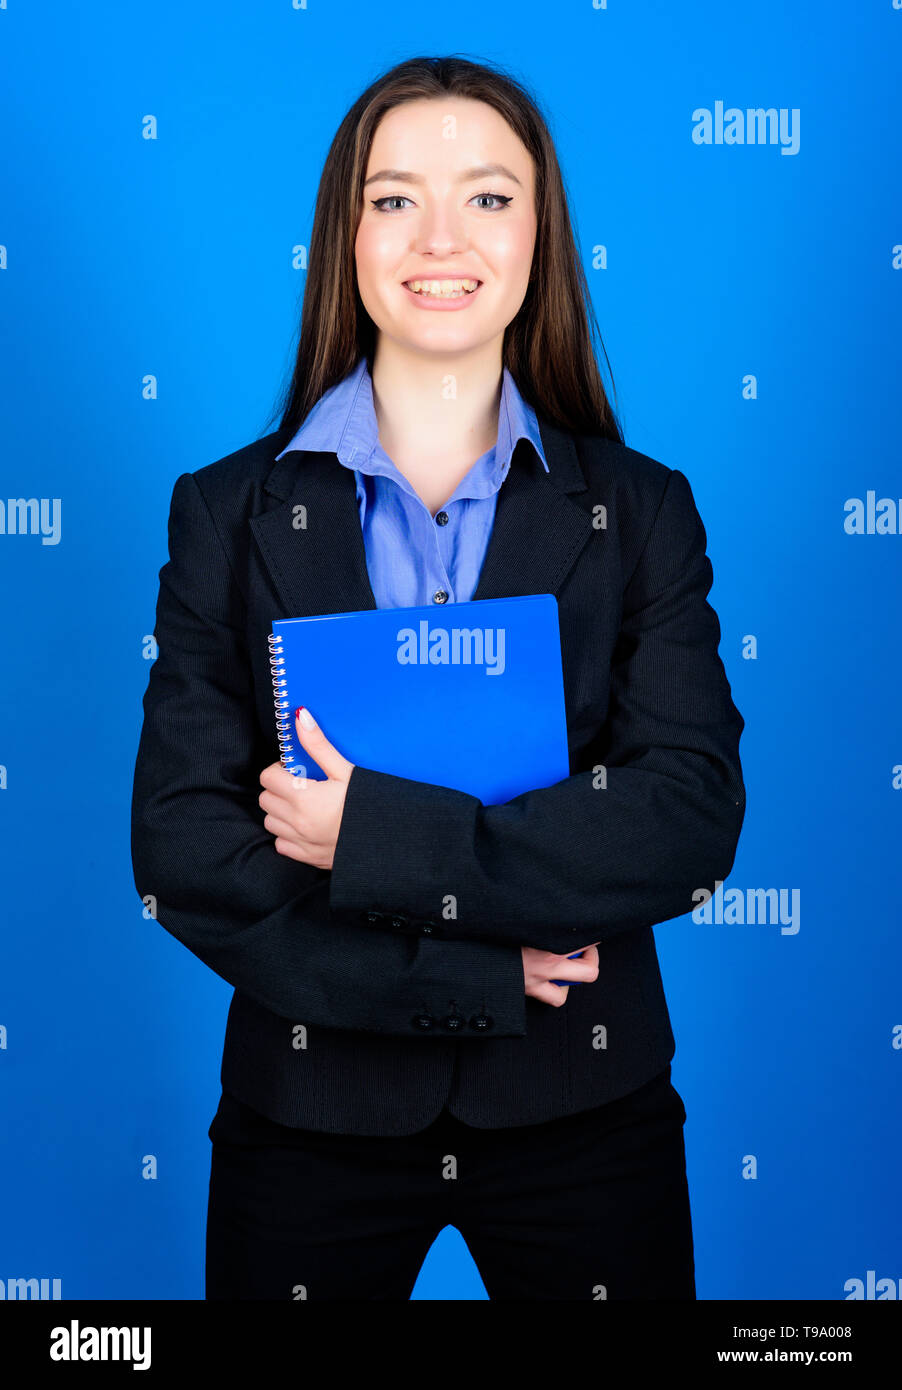 student life. Smart beauty. happy nerd. girl student in formal clothes. business fashion. Schoolgirl with document folder. woman in jacket with paper notes. ready for lesson. education. businesswoman. - Stock Image